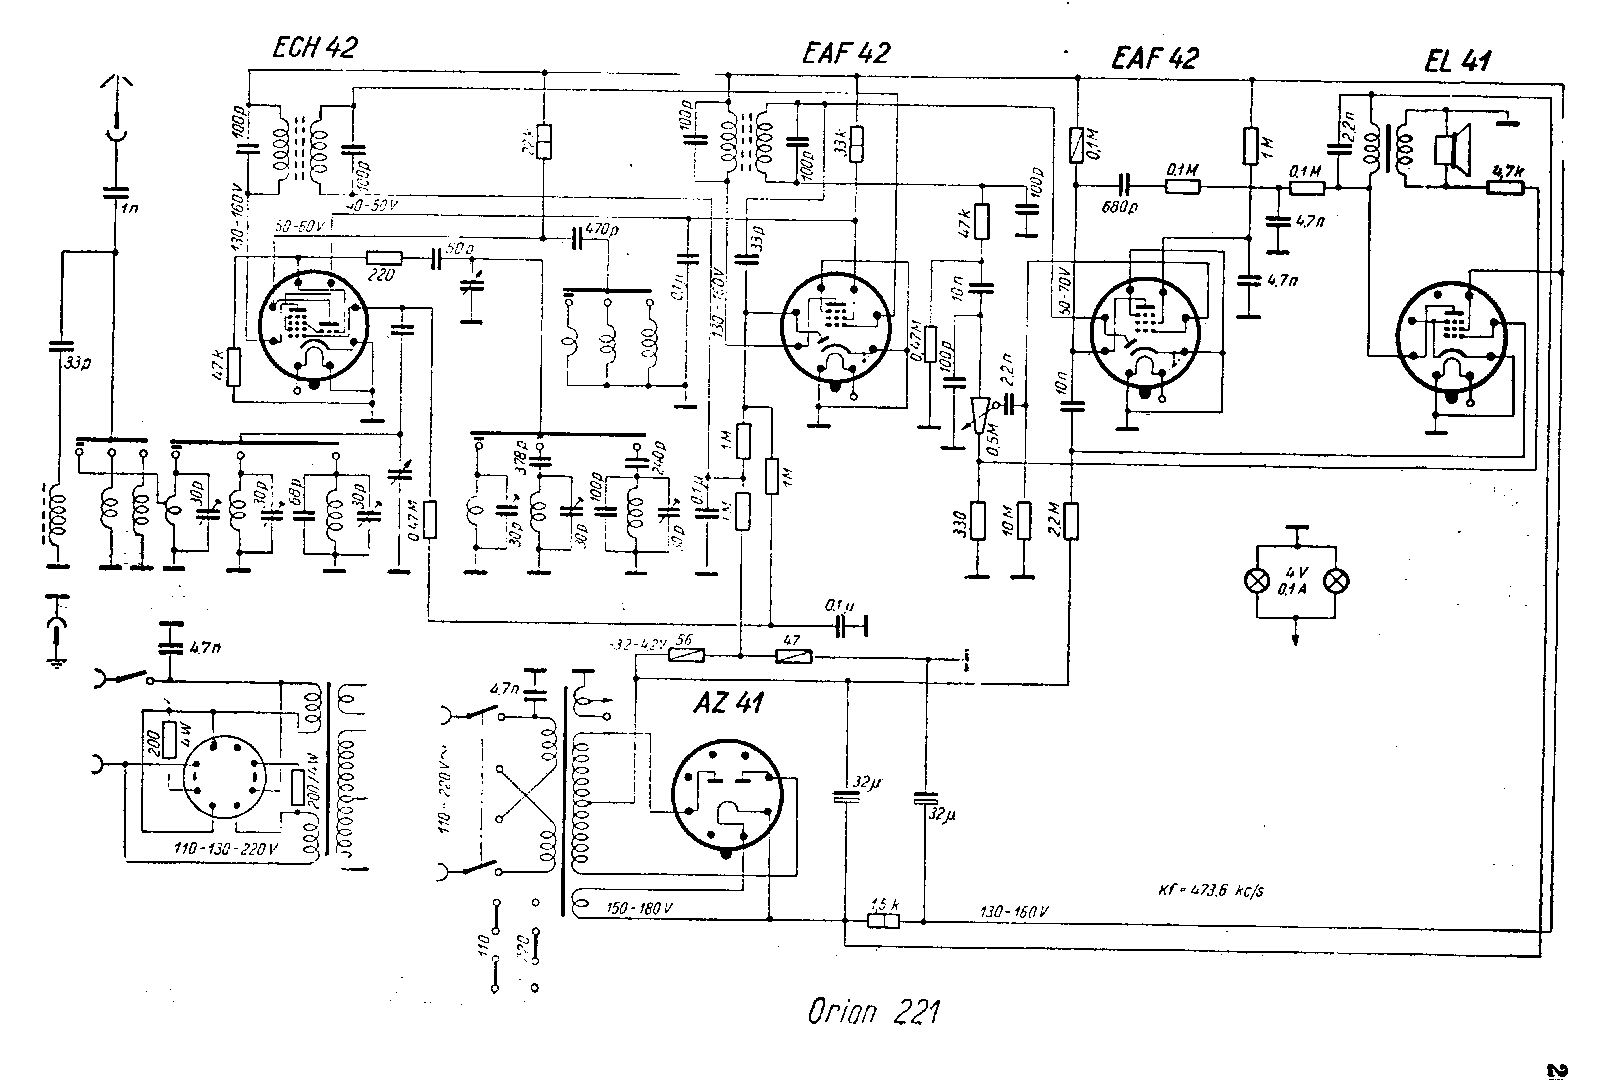 philco car radio wiring diagram with Vintage Radio Schematics on Kenwood Vintage Stereo Receiver together with Delco Radio Wiring Diagram 1964 as well Capacitor Bank Wiring Modes Alpes besides Whirlpool Cabrio Dryer Heating Element Location further Vintage Radio Schematics.